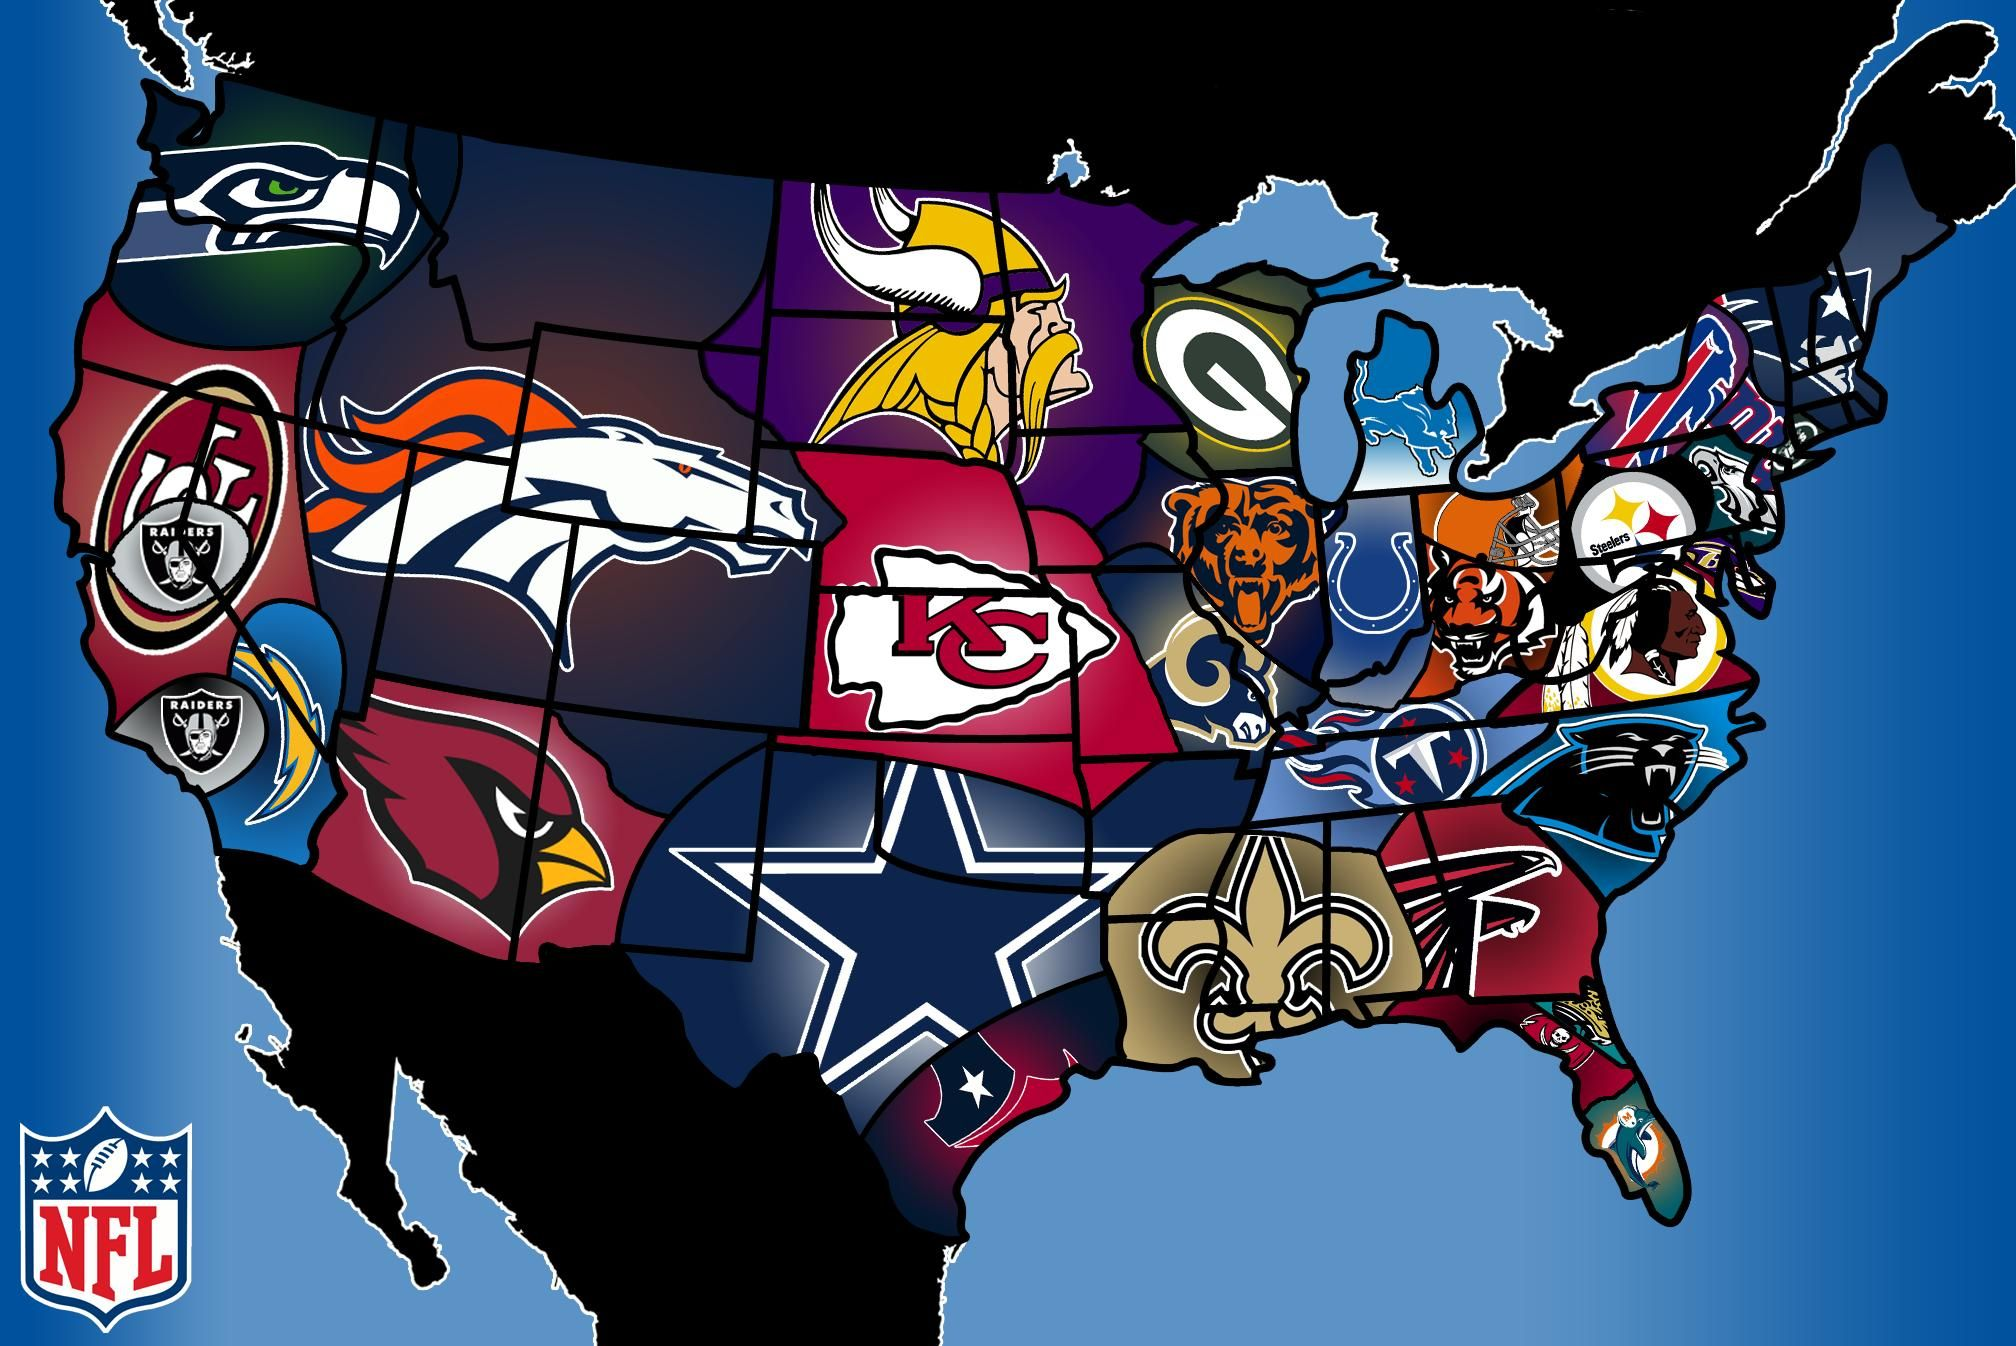 Nfl Teams Wallpapers 2015 Nfl Season Nfl Fans Nfl Teams